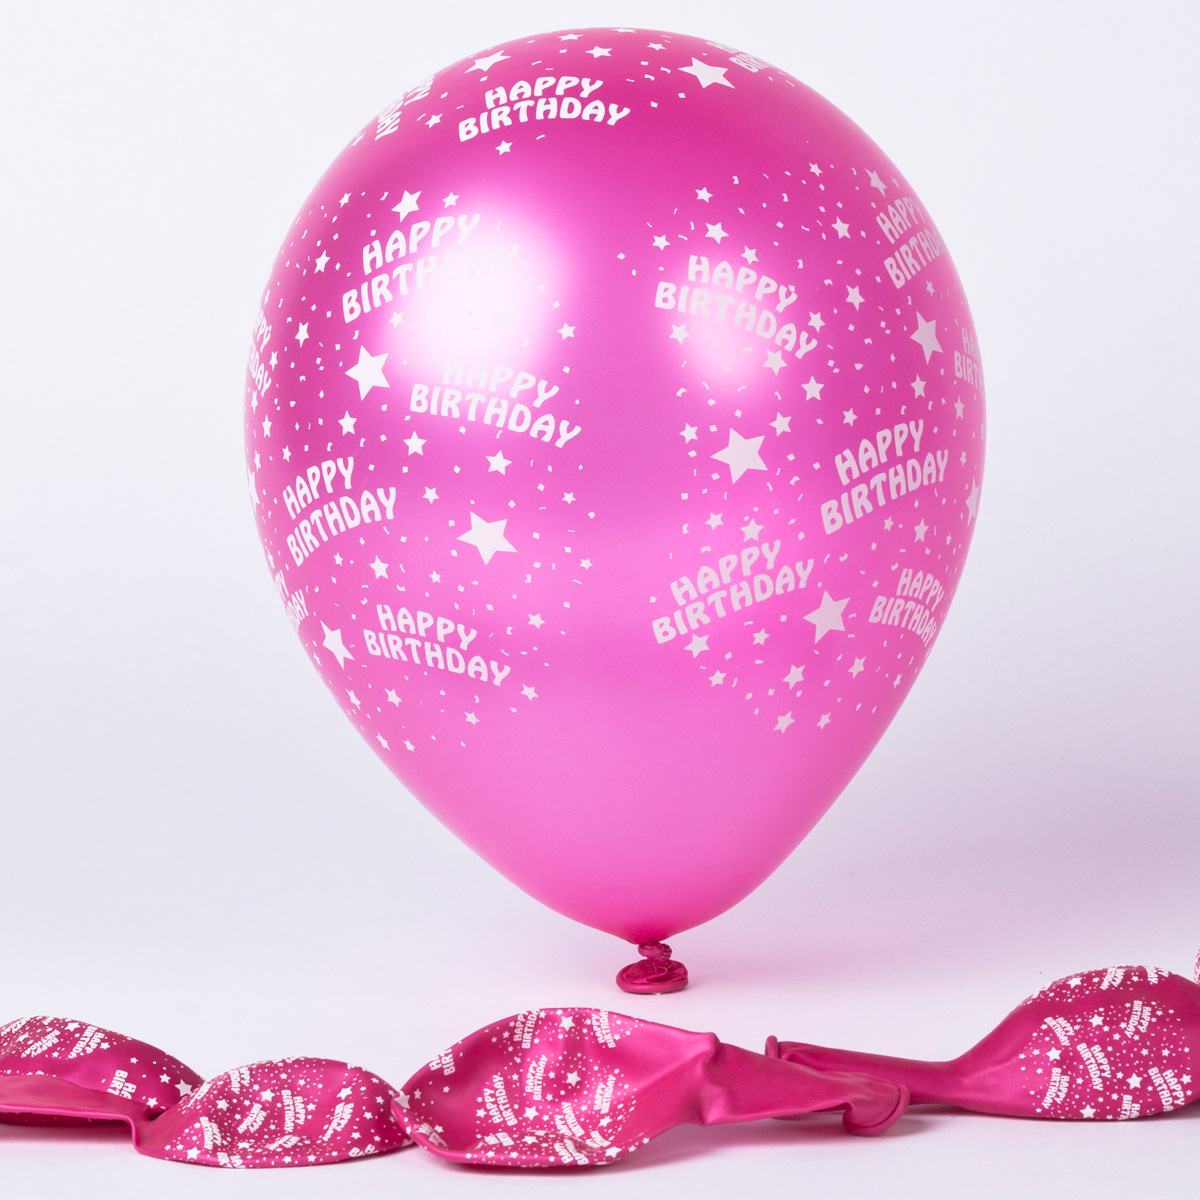 birthday balloons card factory ; metallic-pink-happy-birthday-latex-balloons-pack-of-6_a